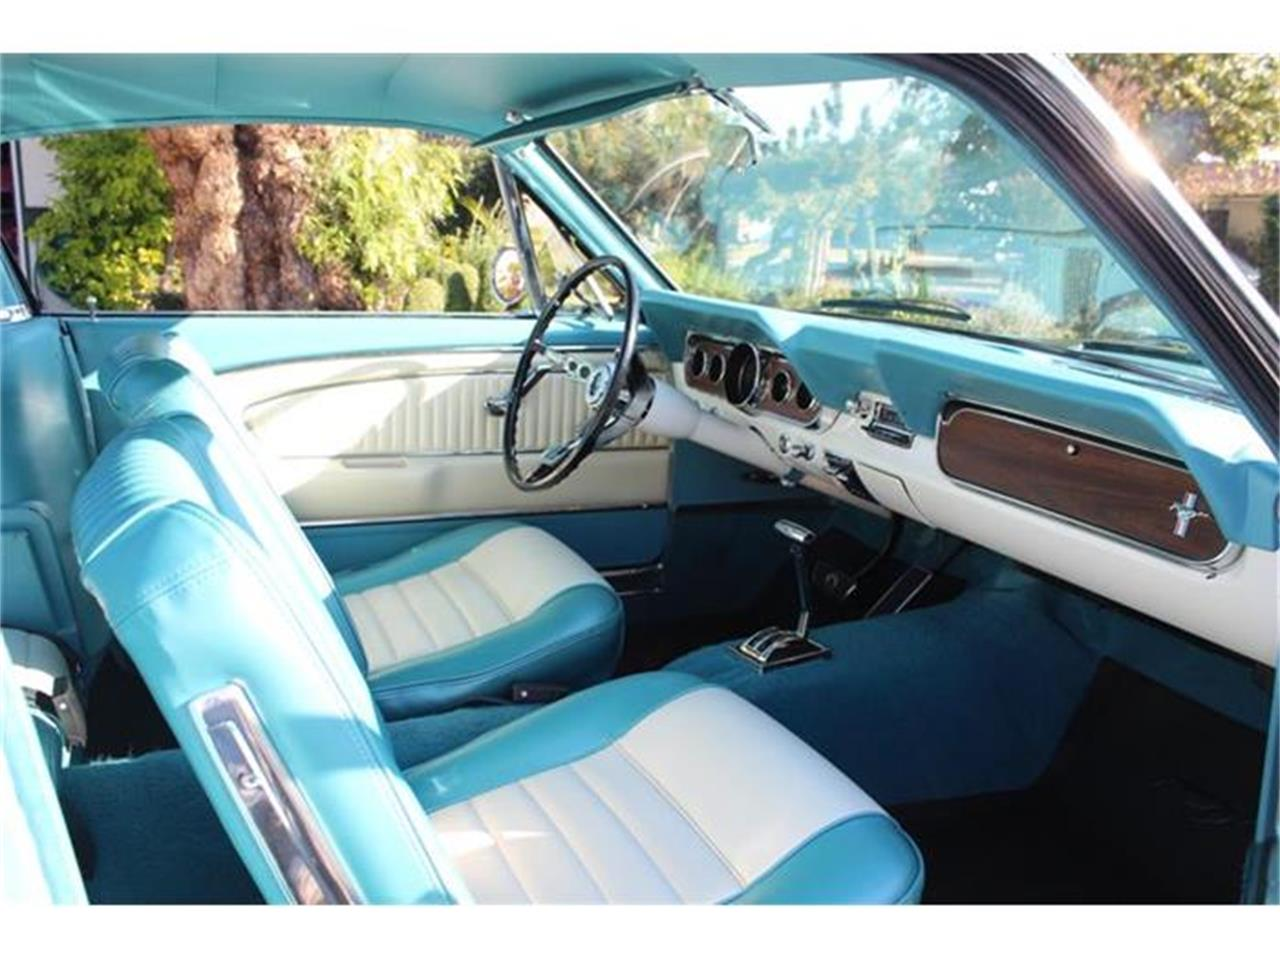 Large Picture of '66 Ford Mustang located in West Covina California - $40,000.00 - BFEI